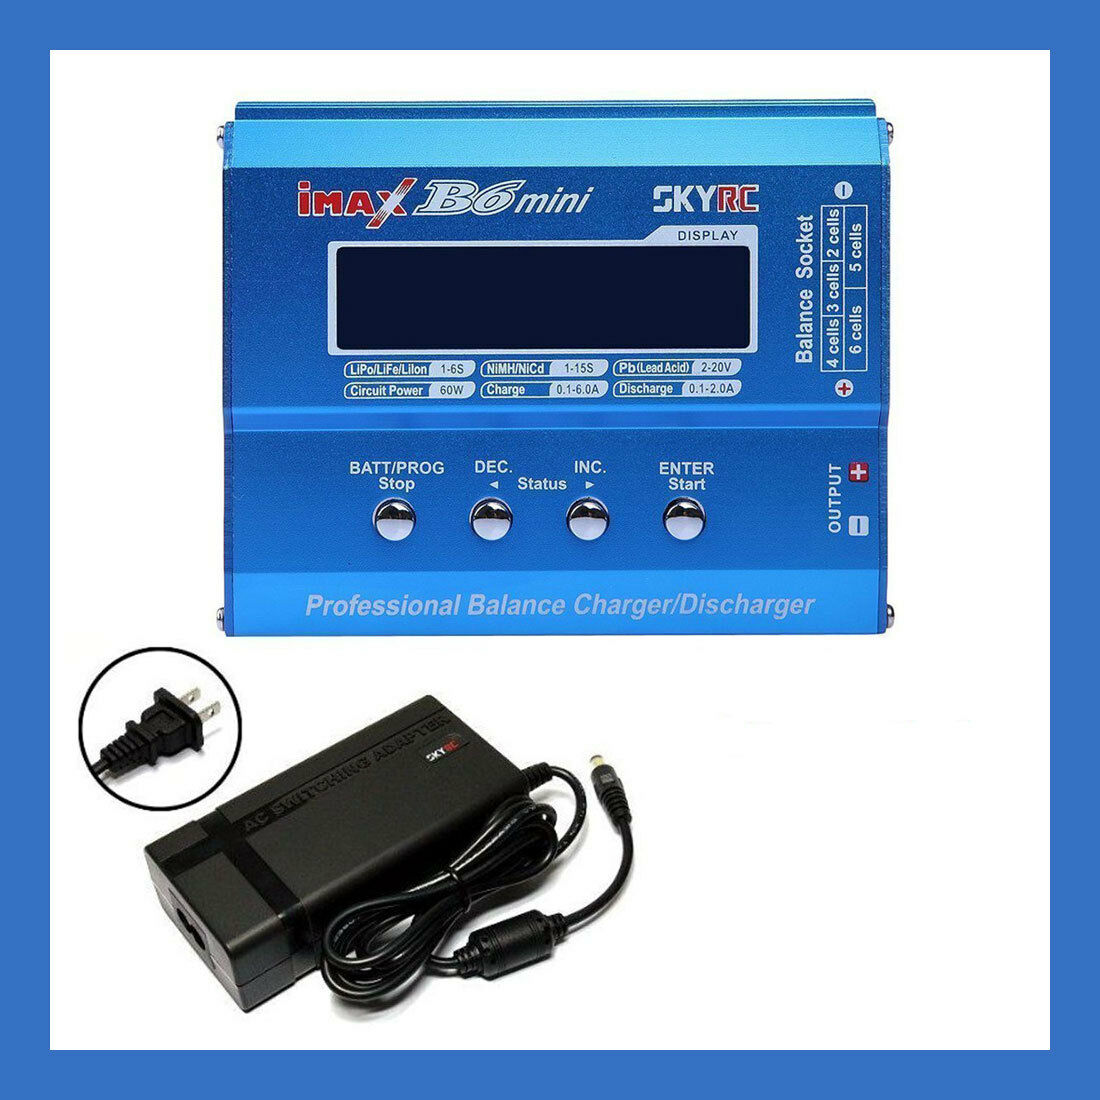 SKYRC iMAX B6 Mini 1-6 cell Li-Po Battery Balance Charger - w/ OEM AC Adapter